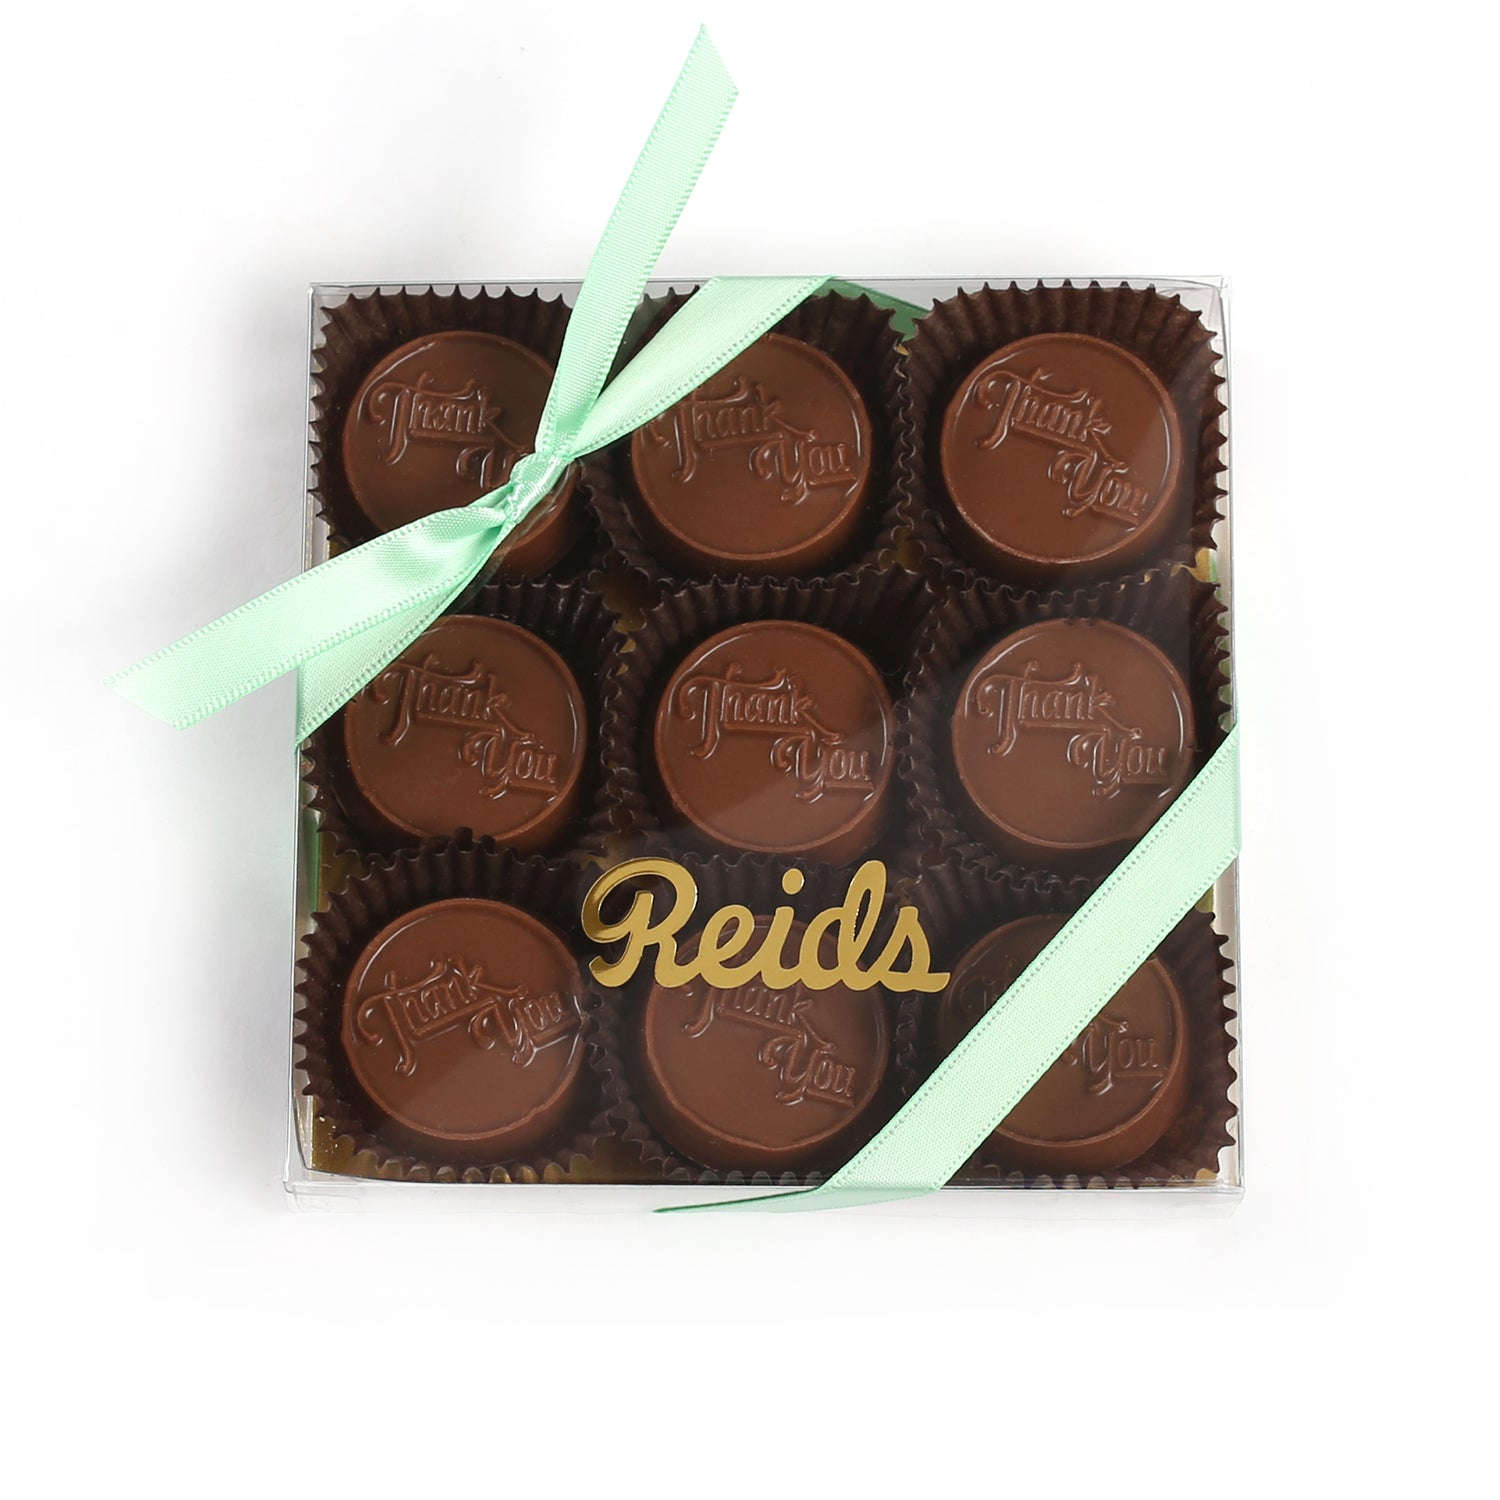 Product photo of thank you chocolate bites box with mint ribbon